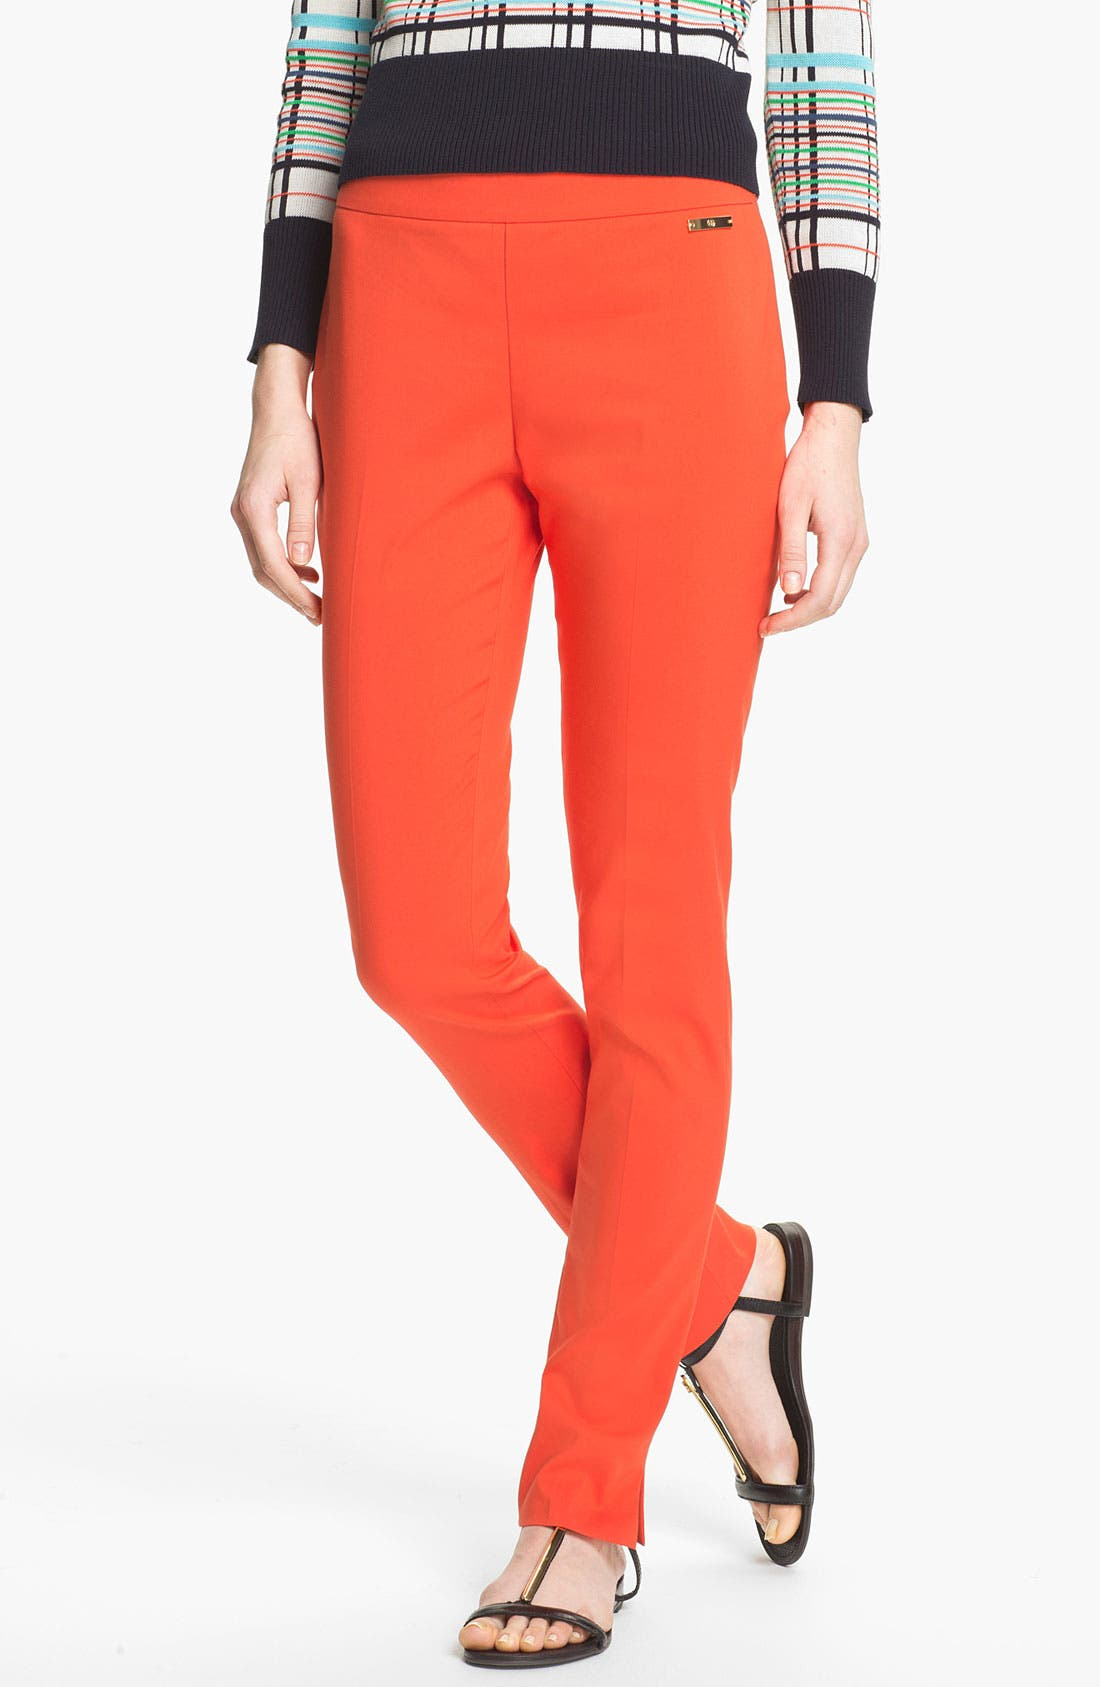 Alternate Image 1 Selected - Tory Burch 'Tabby' Skinny Pants